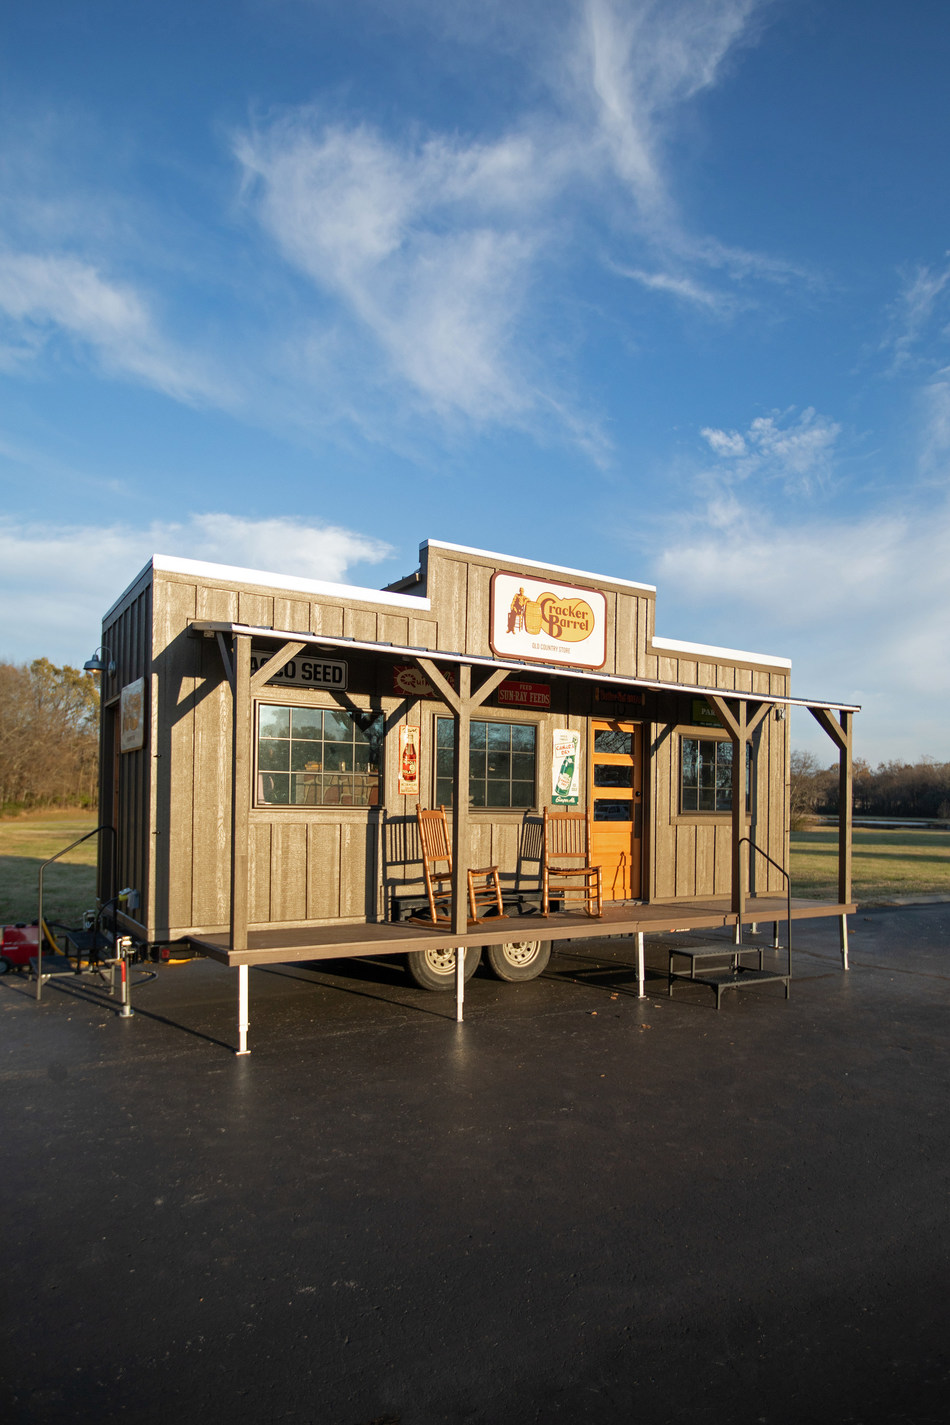 """In celebration of its 50th anniversary, Cracker Barrel Old Country Store unveiled a tiny, """"New York City-sized"""" Cracker Barrel store as part of its debut in the 93rd Annual Macy's Thanksgiving Day Parade."""